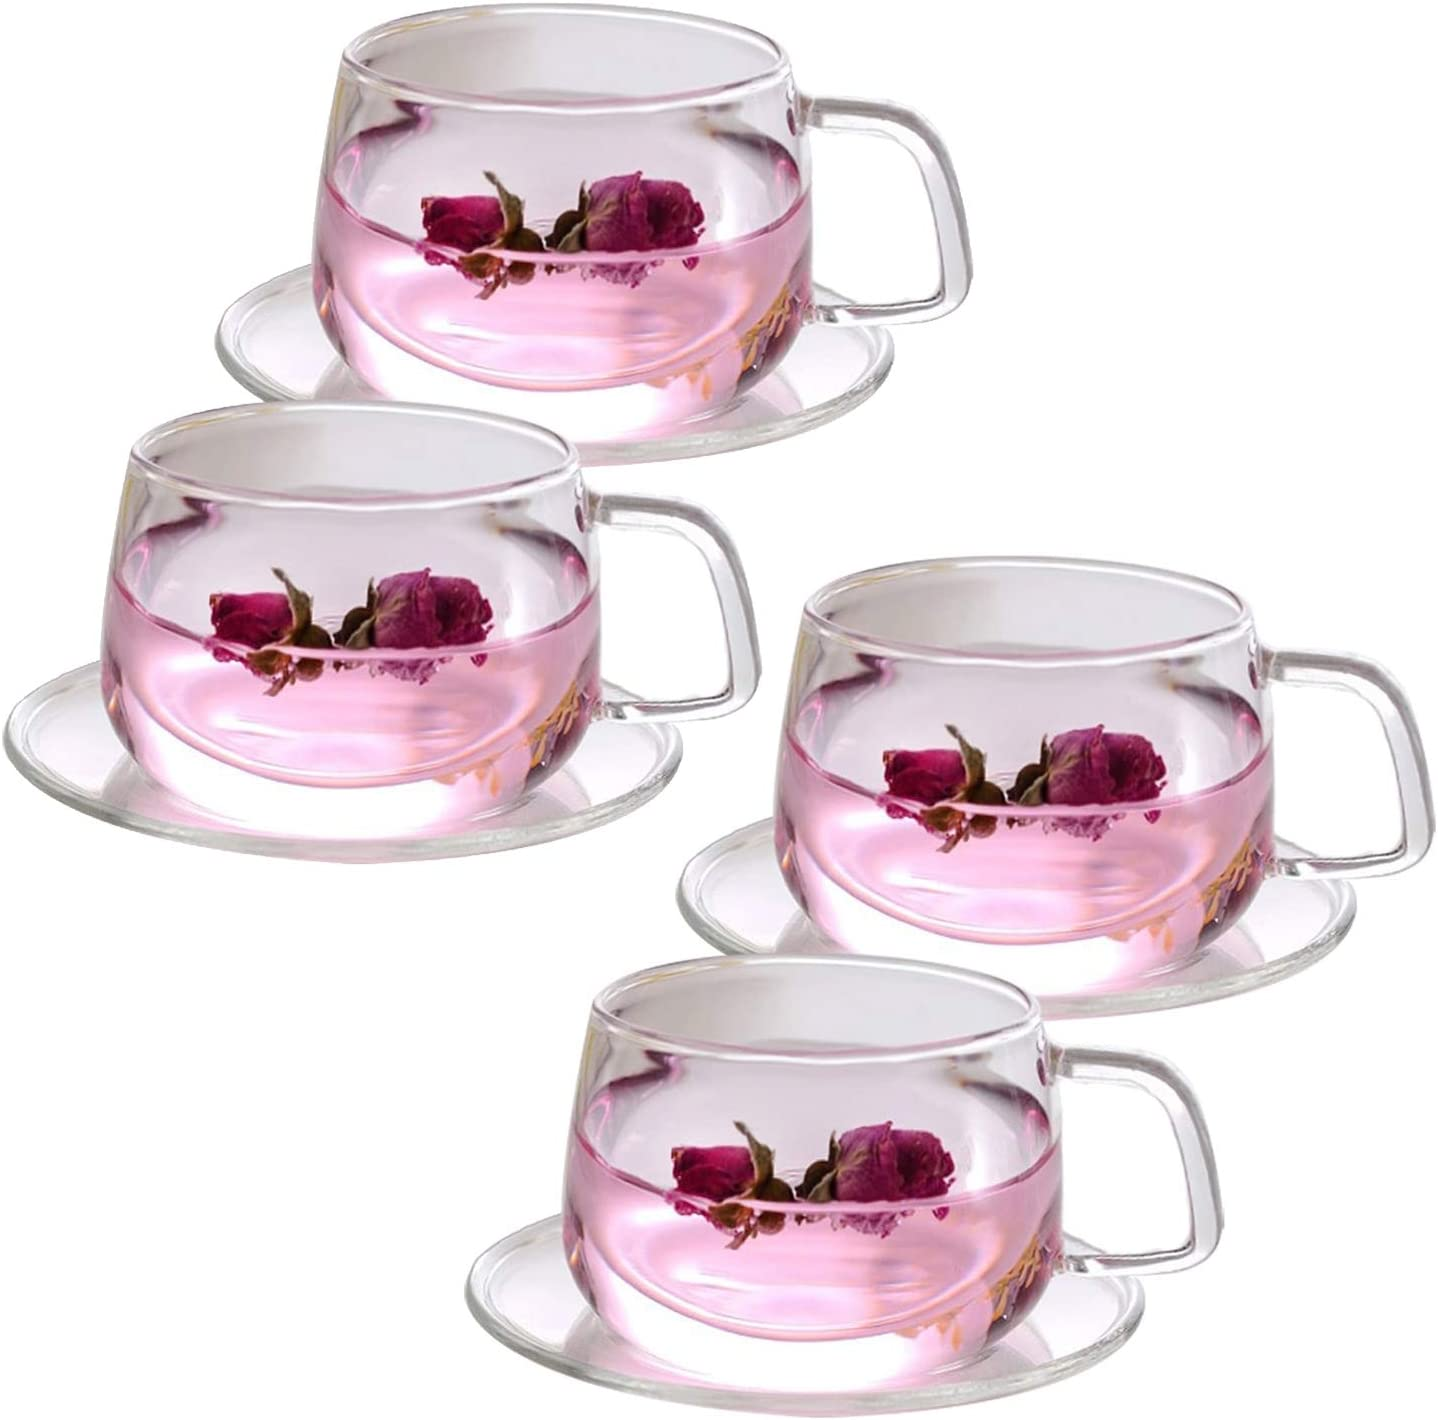 Amazon Com Tosnail 4 Pack 11 Ounce Clear Glass Tea Cups And Saucers Sets Cup Saucer Sets